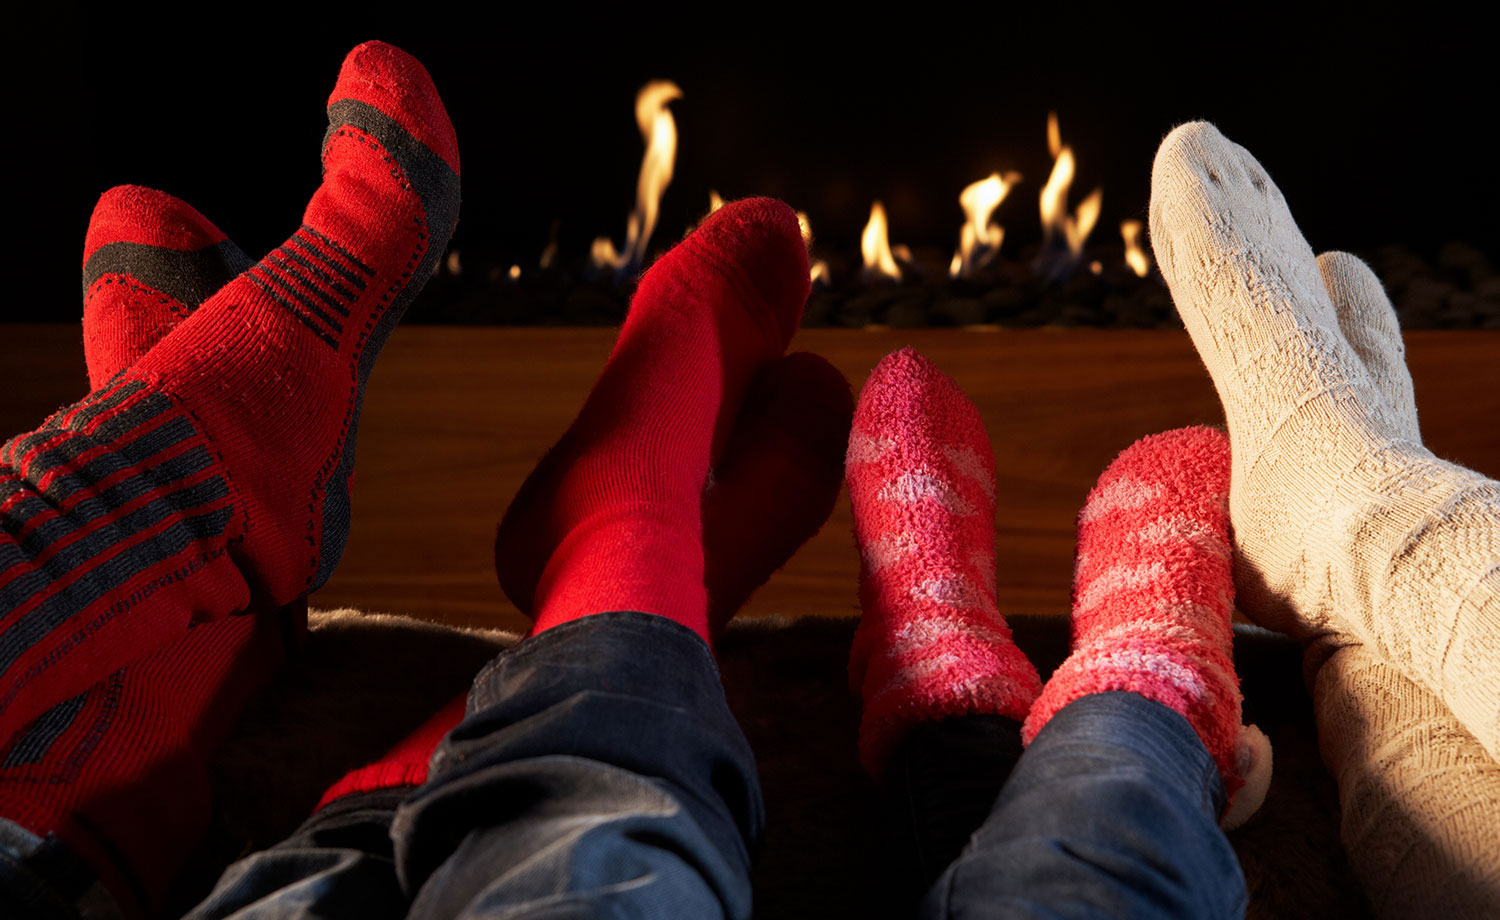 Feet in front of fireplace.